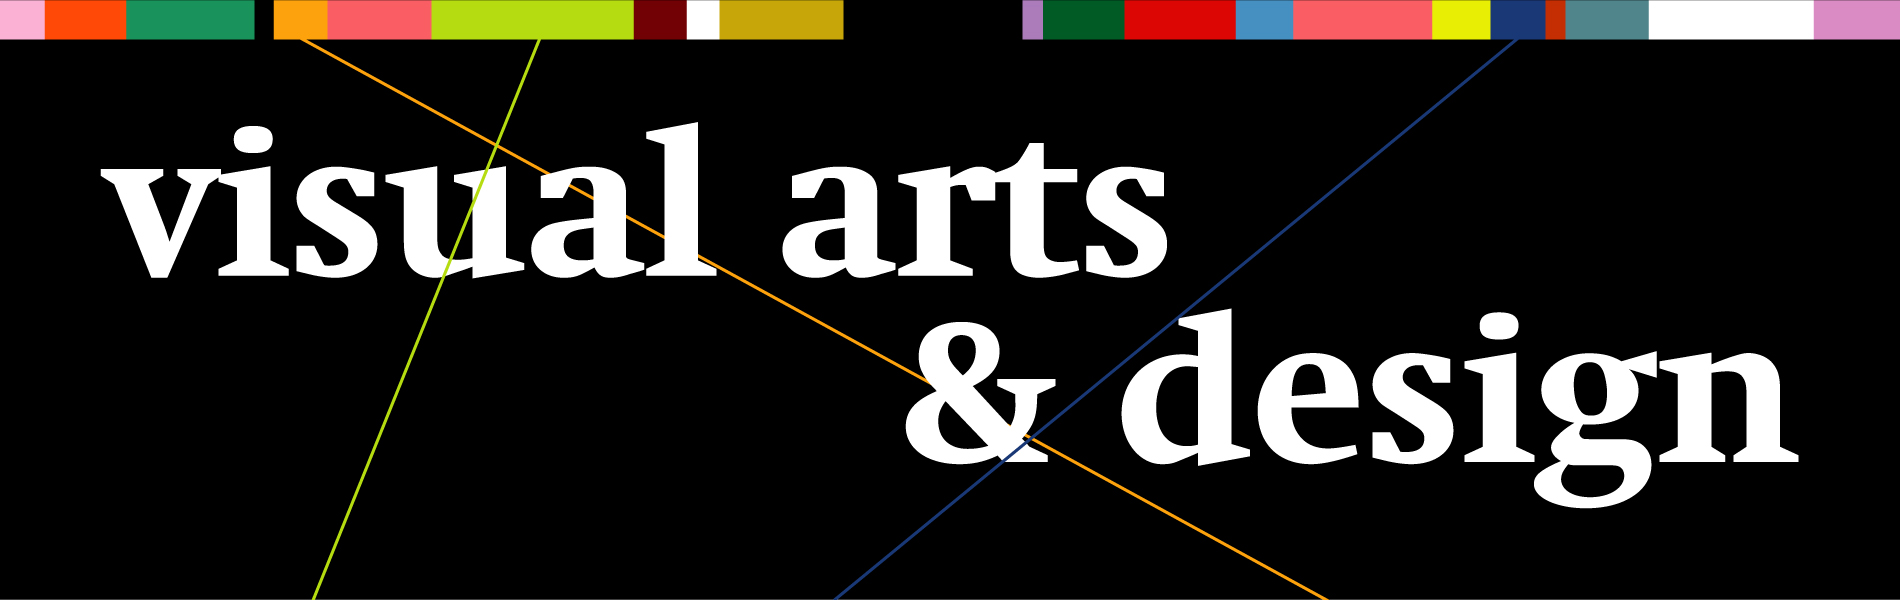 Visual Arts and Design, white letters on black background